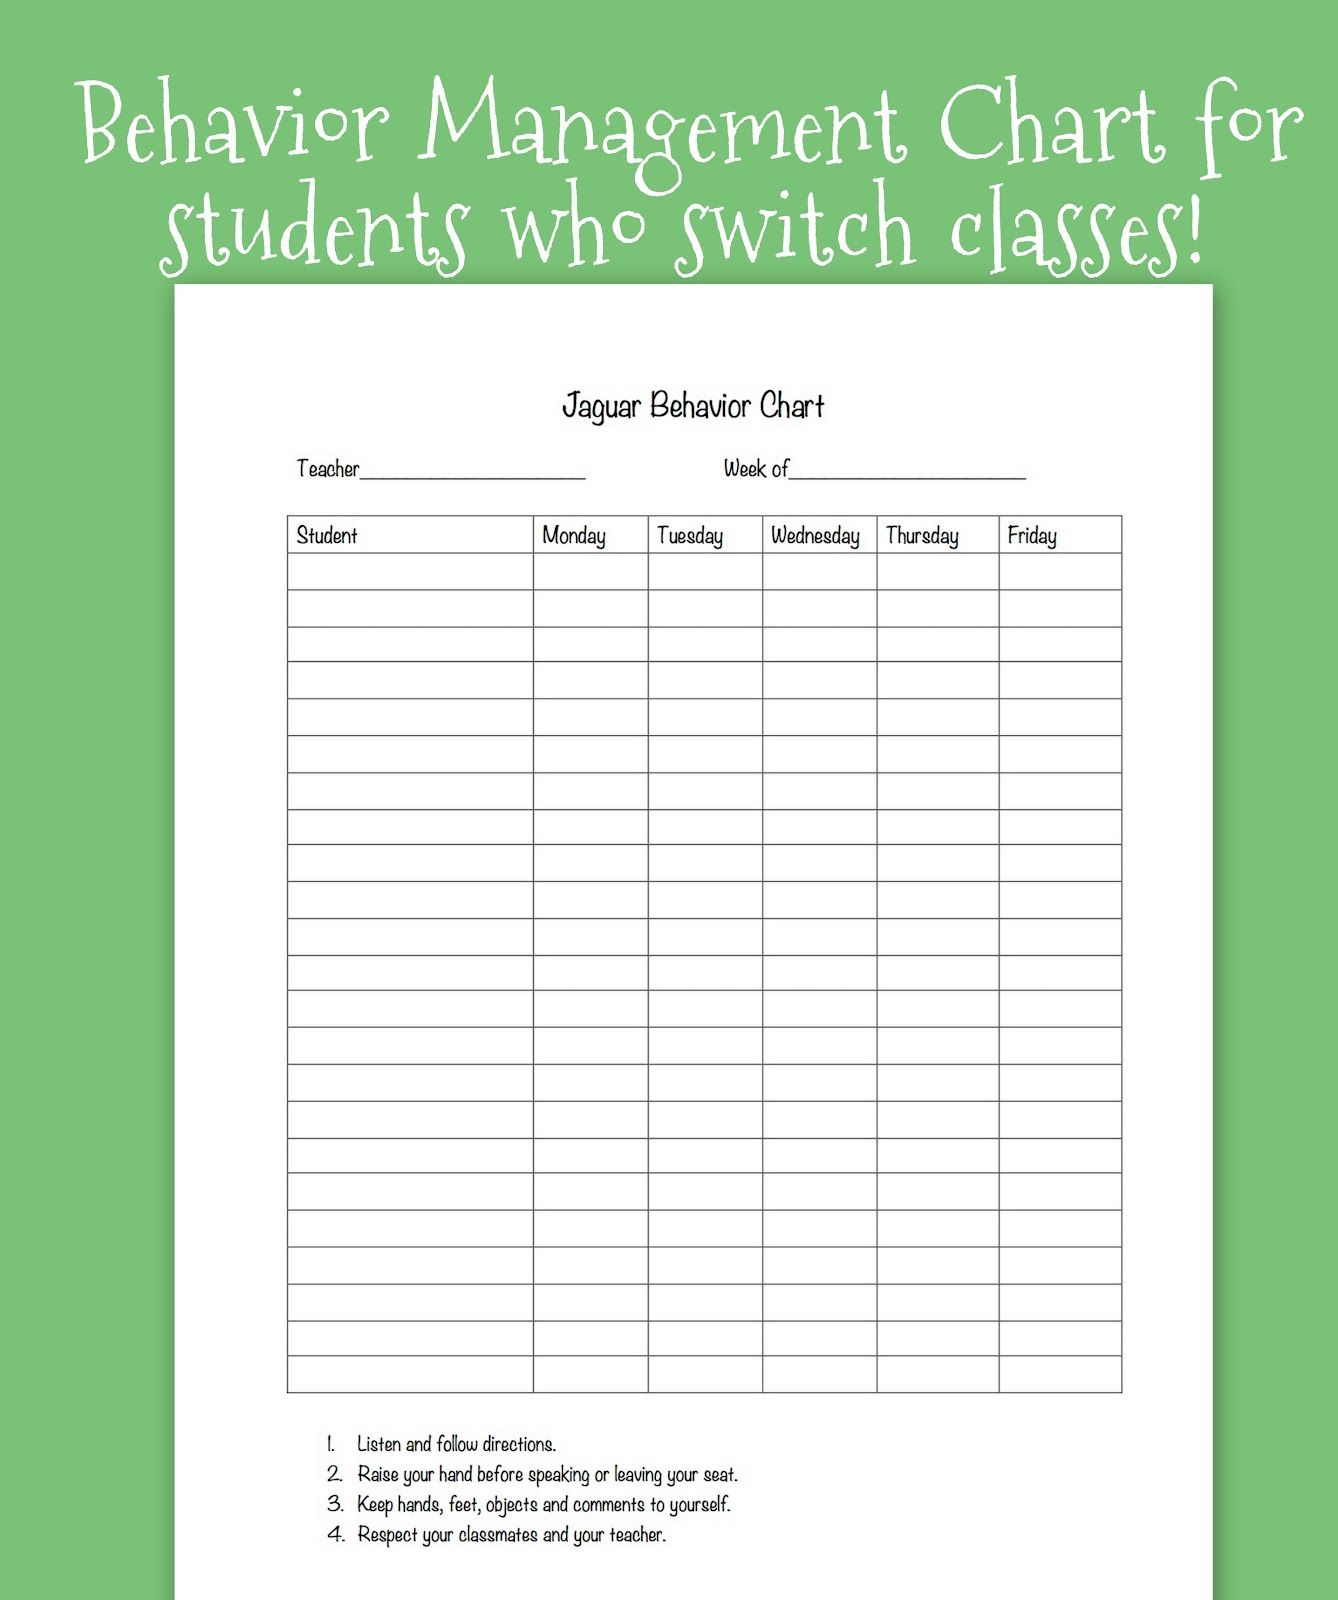 Tween teaching classroom behavior system for upper grades also best charts and checklists secondary students images rh pinterest